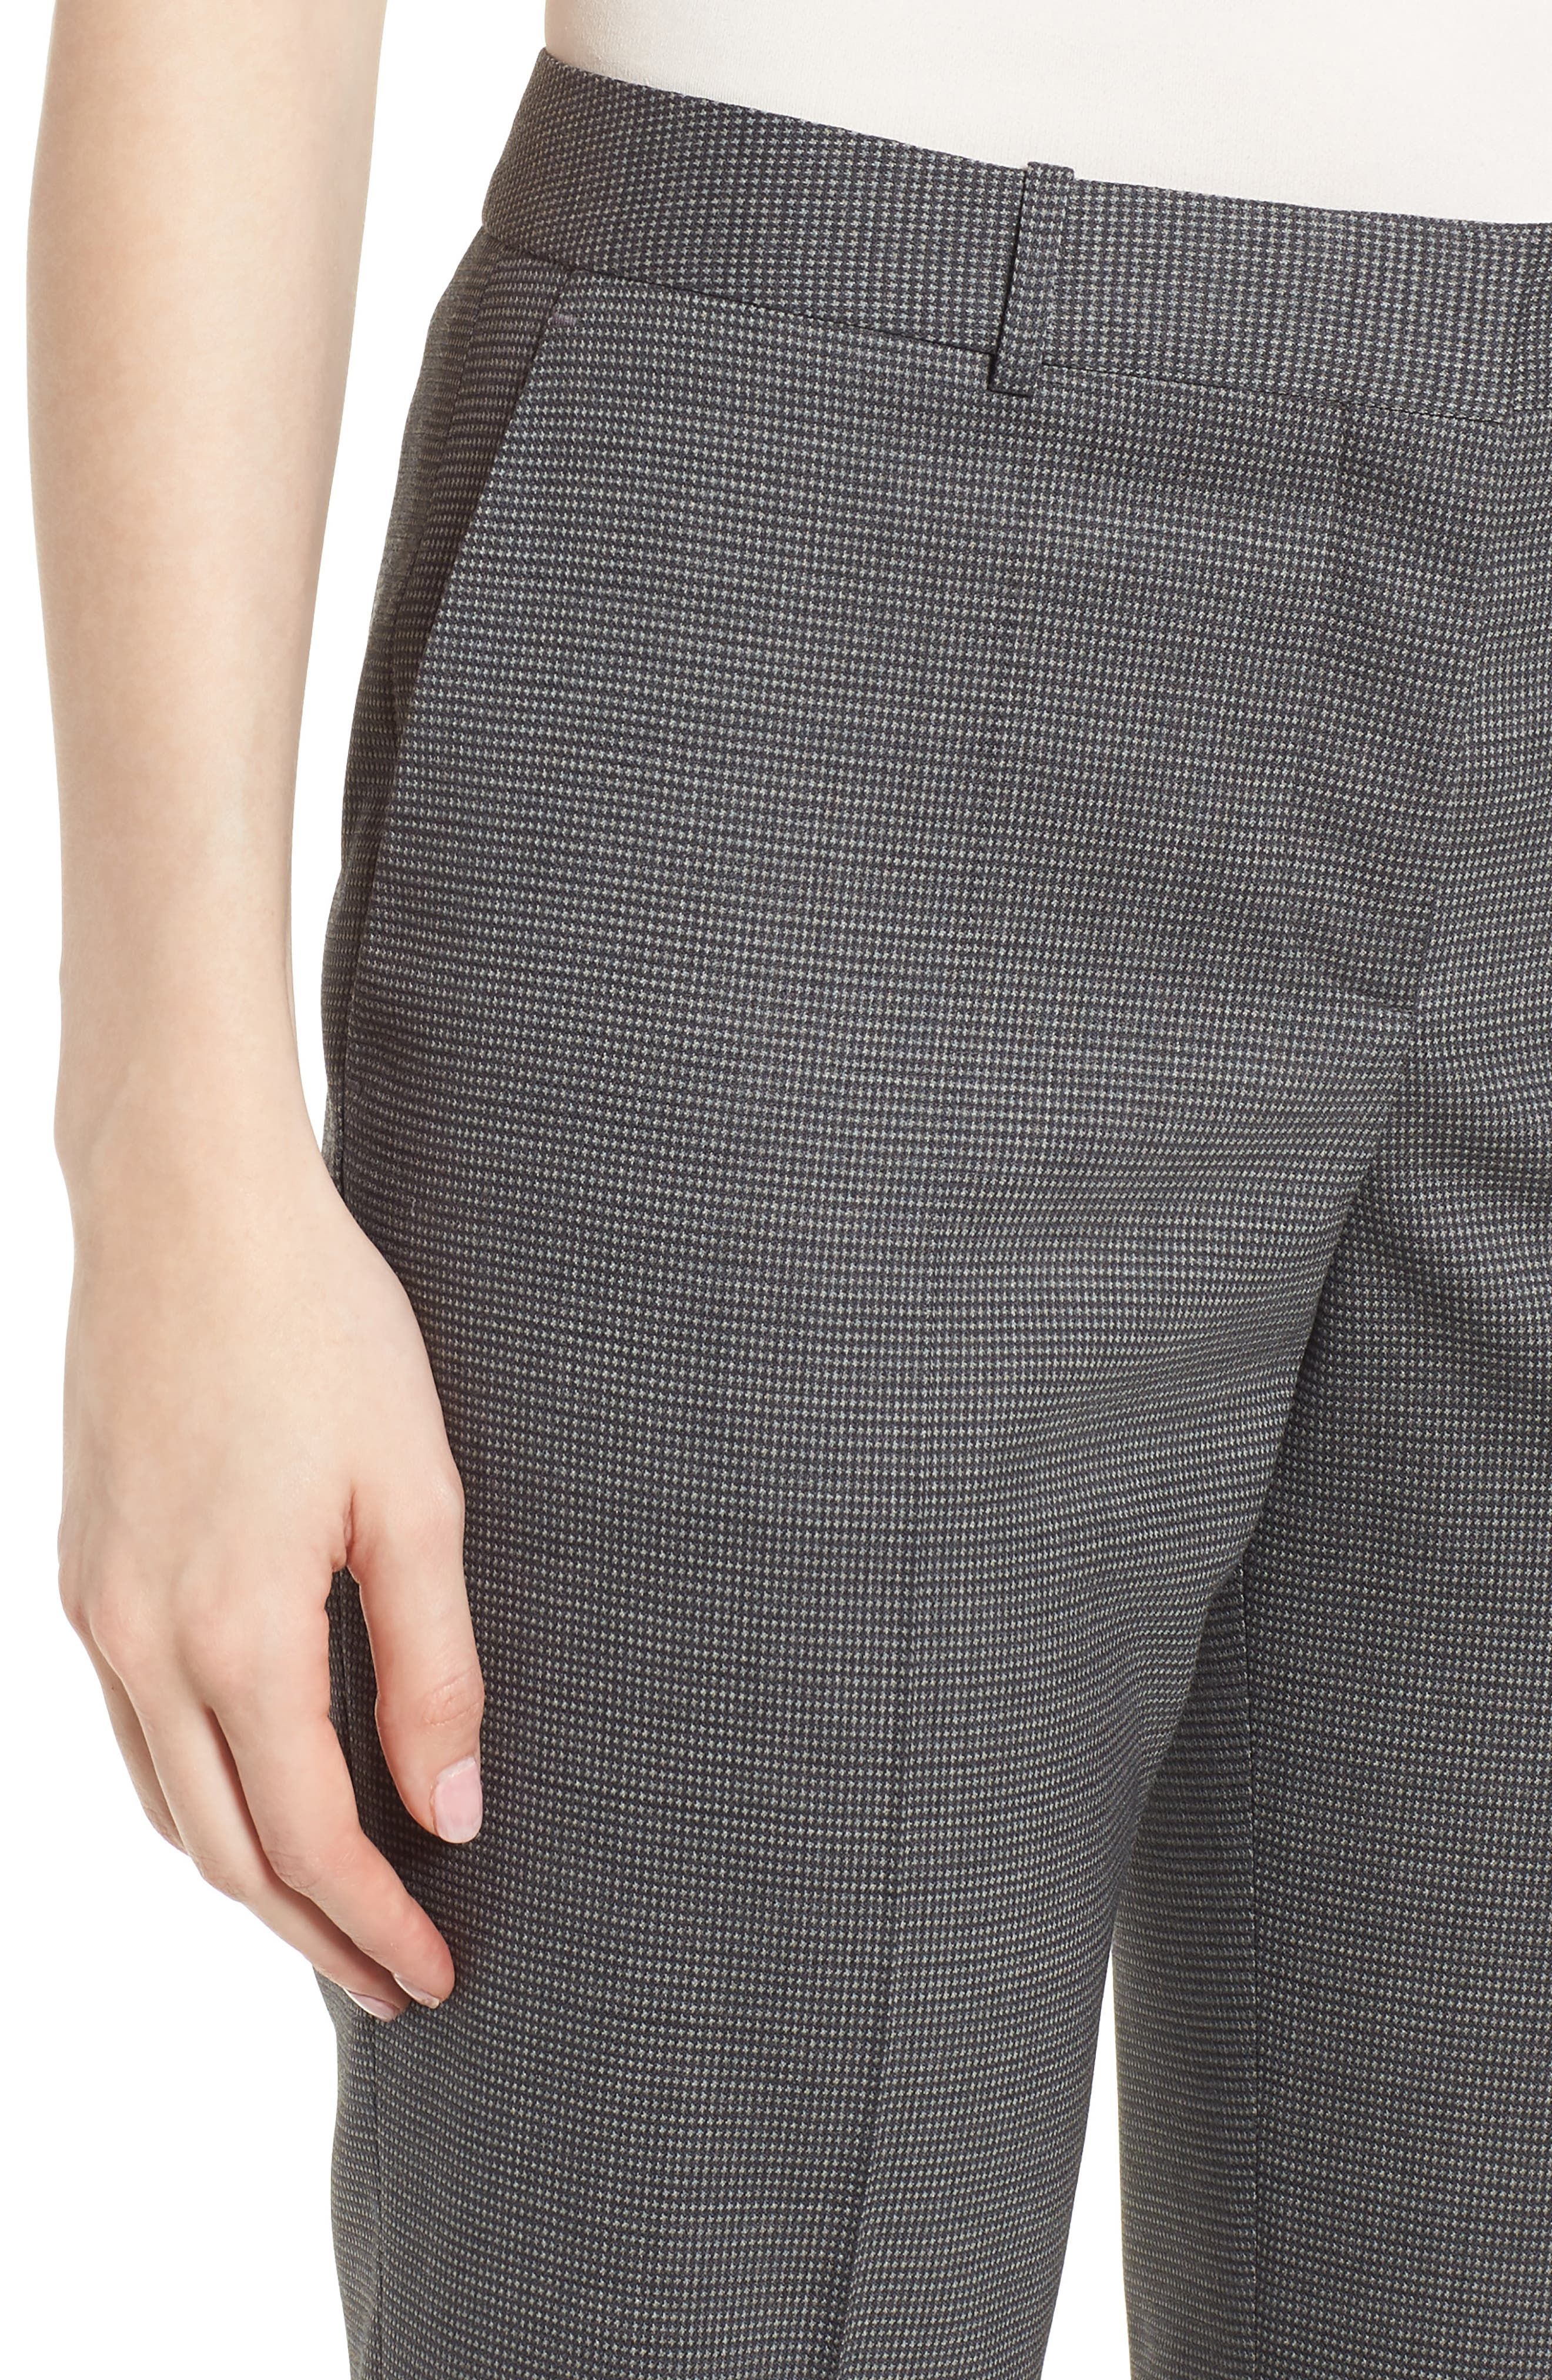 Tamea Minidessin Trousers,                             Alternate thumbnail 4, color,                             Cozy Grey Fantasy